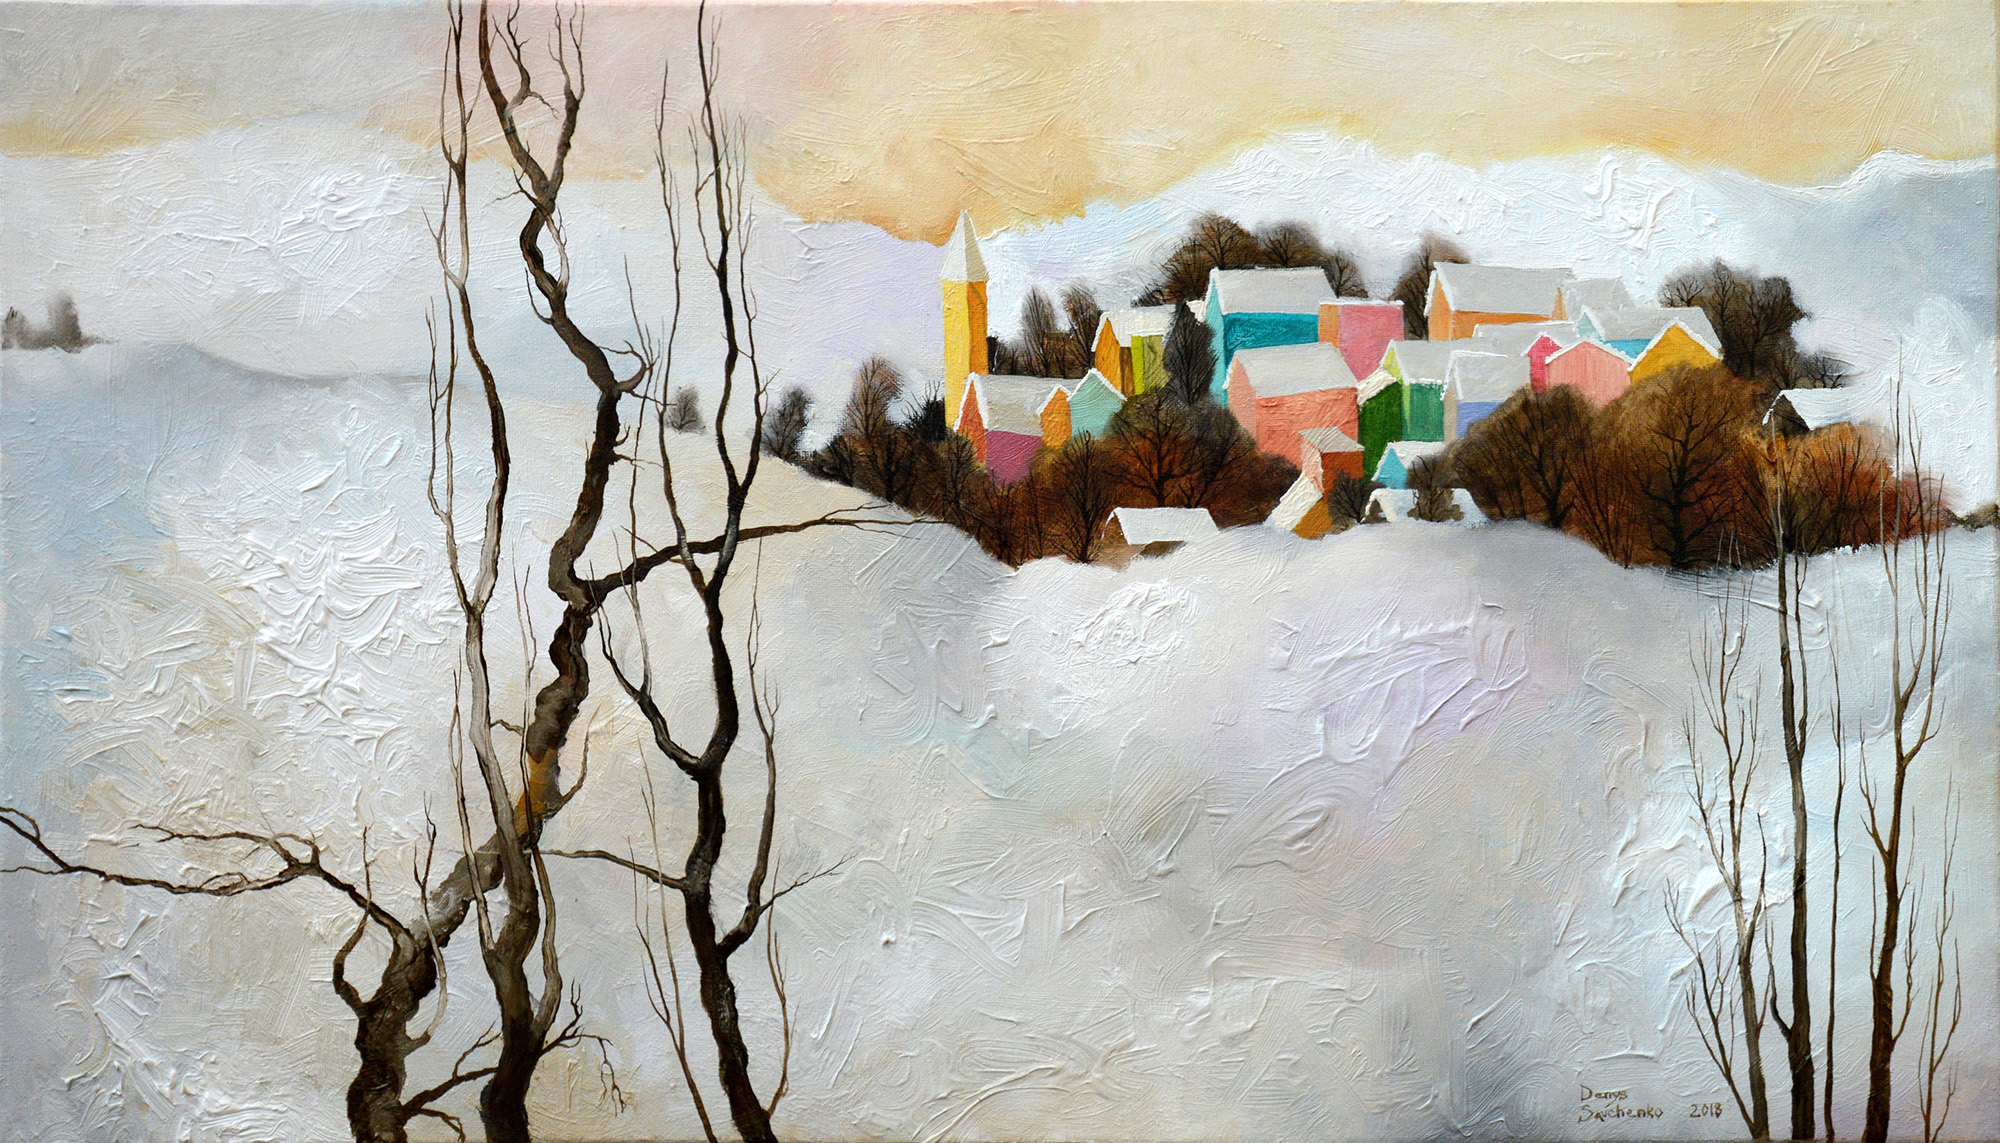 Denys Savchenko. Oil painting. Landscape. Under snow